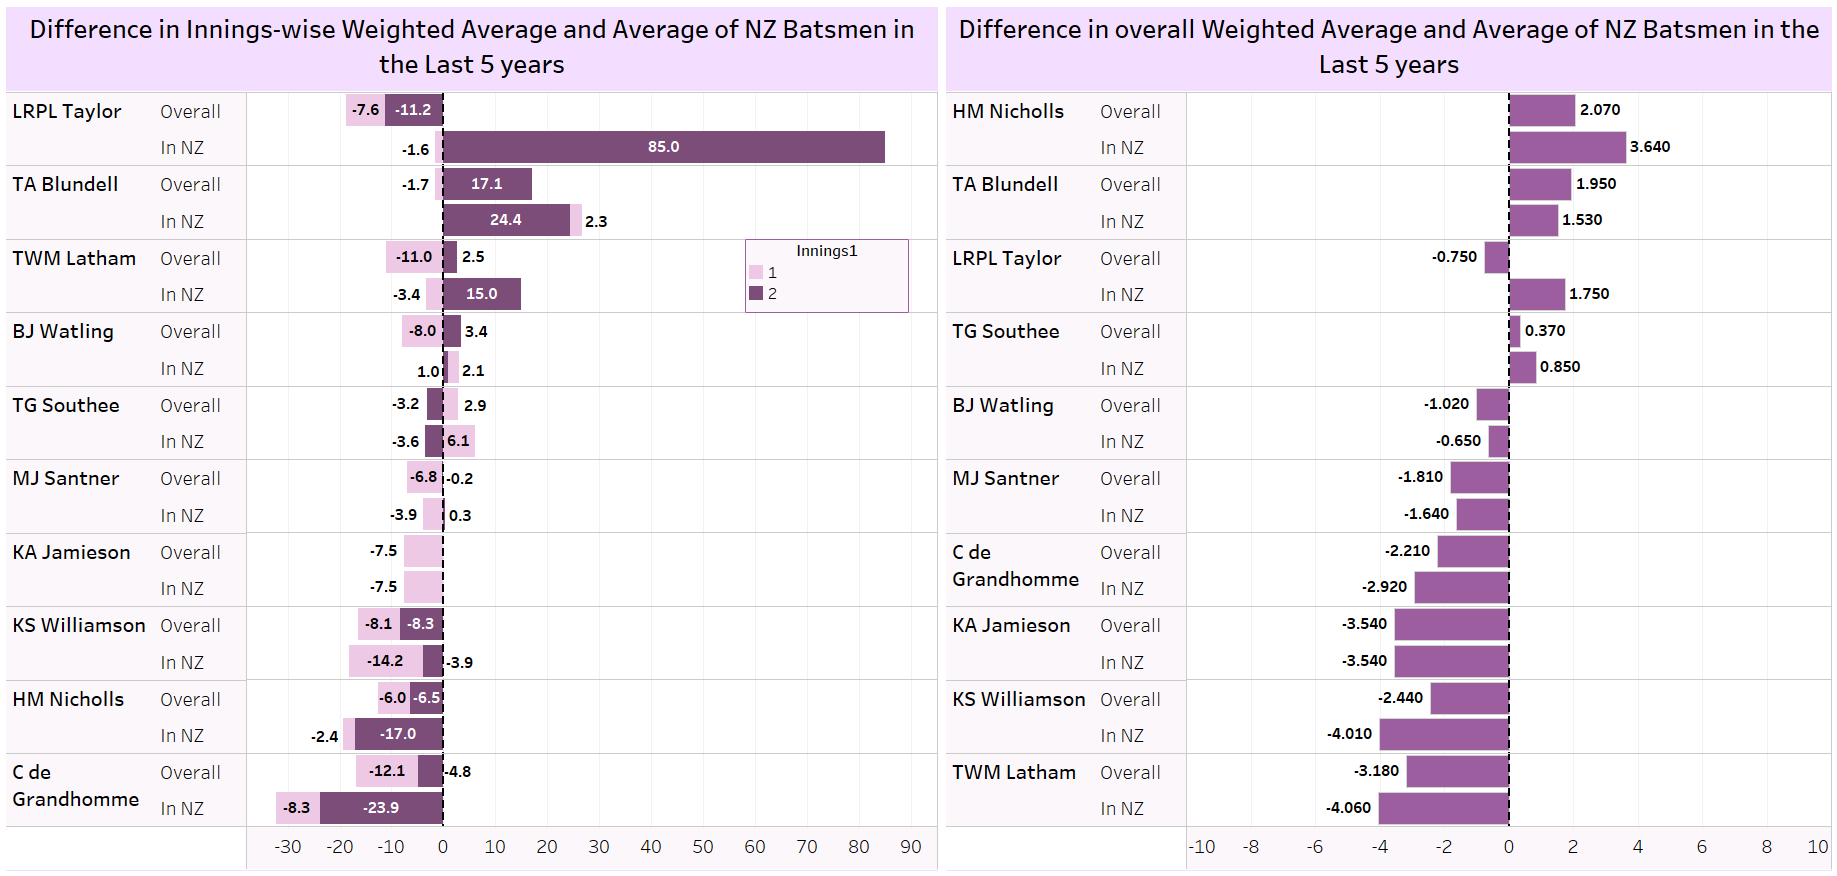 Differences in Weighted Batting Averages and Traditional Average of New Zealand Batsmen in the last 5 years